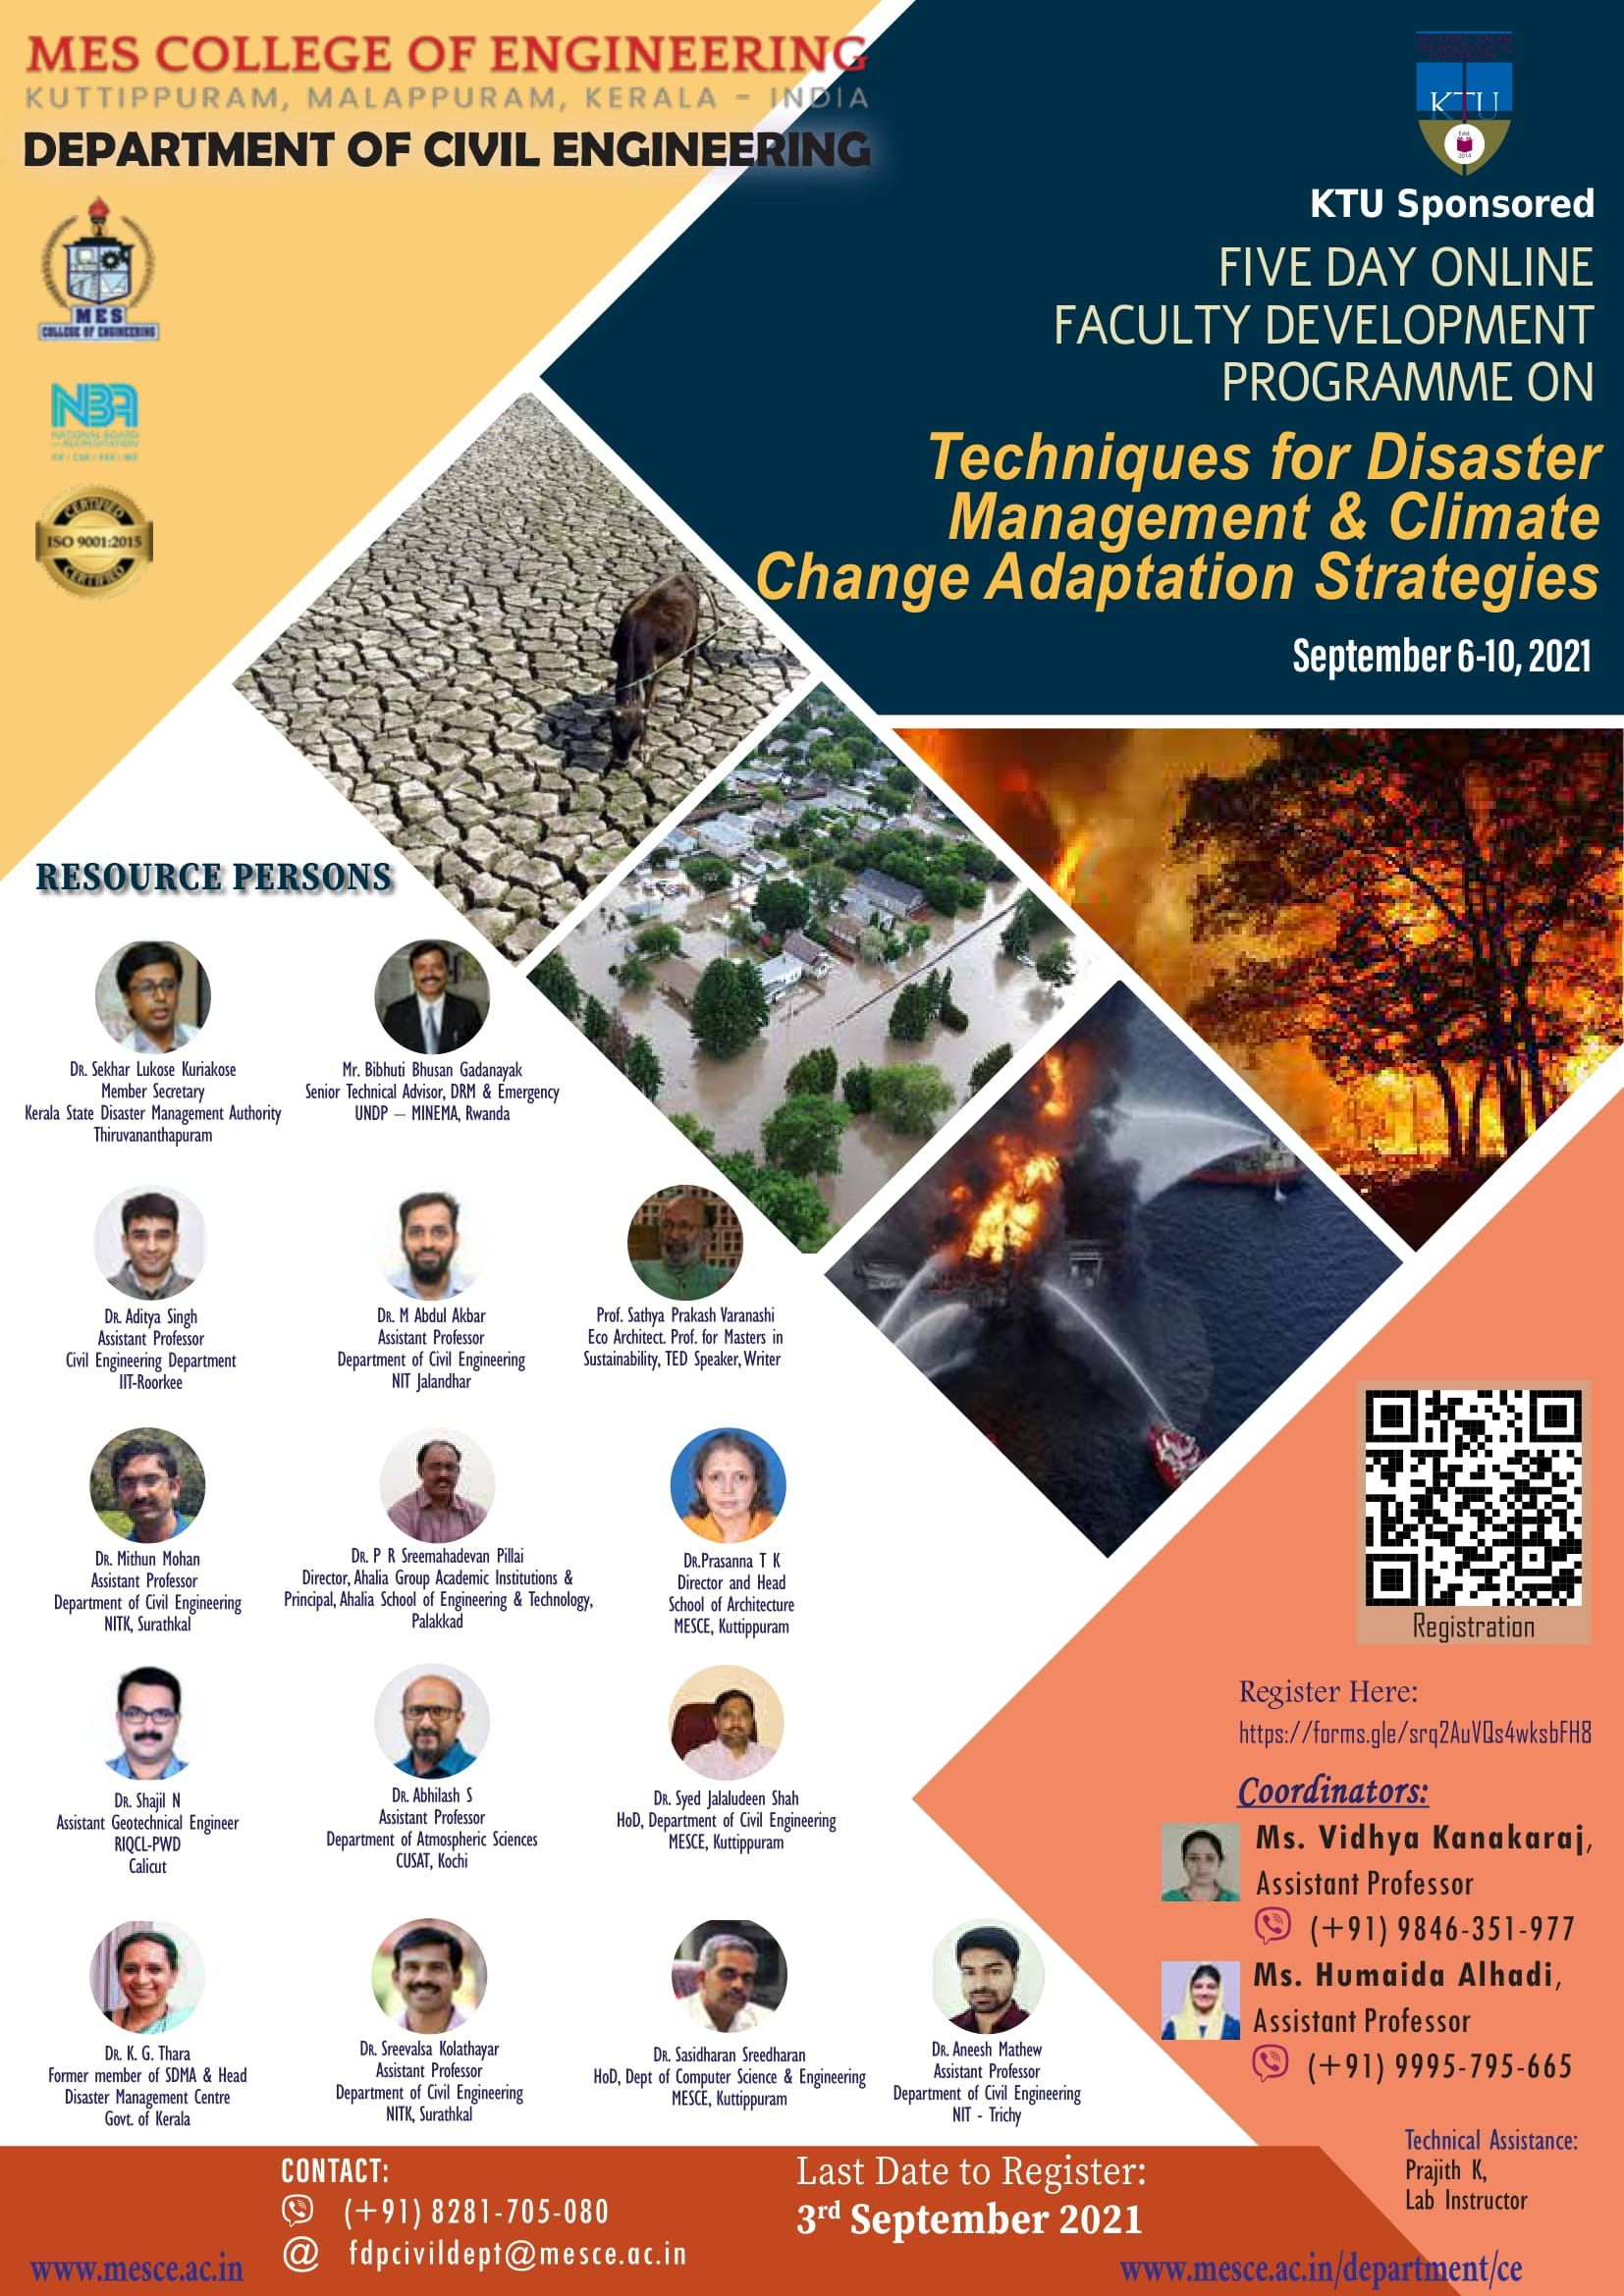 """KTU sponsored faculty development programme (online) on """"Techniques for disaster management & climate change adaptation strategies."""""""